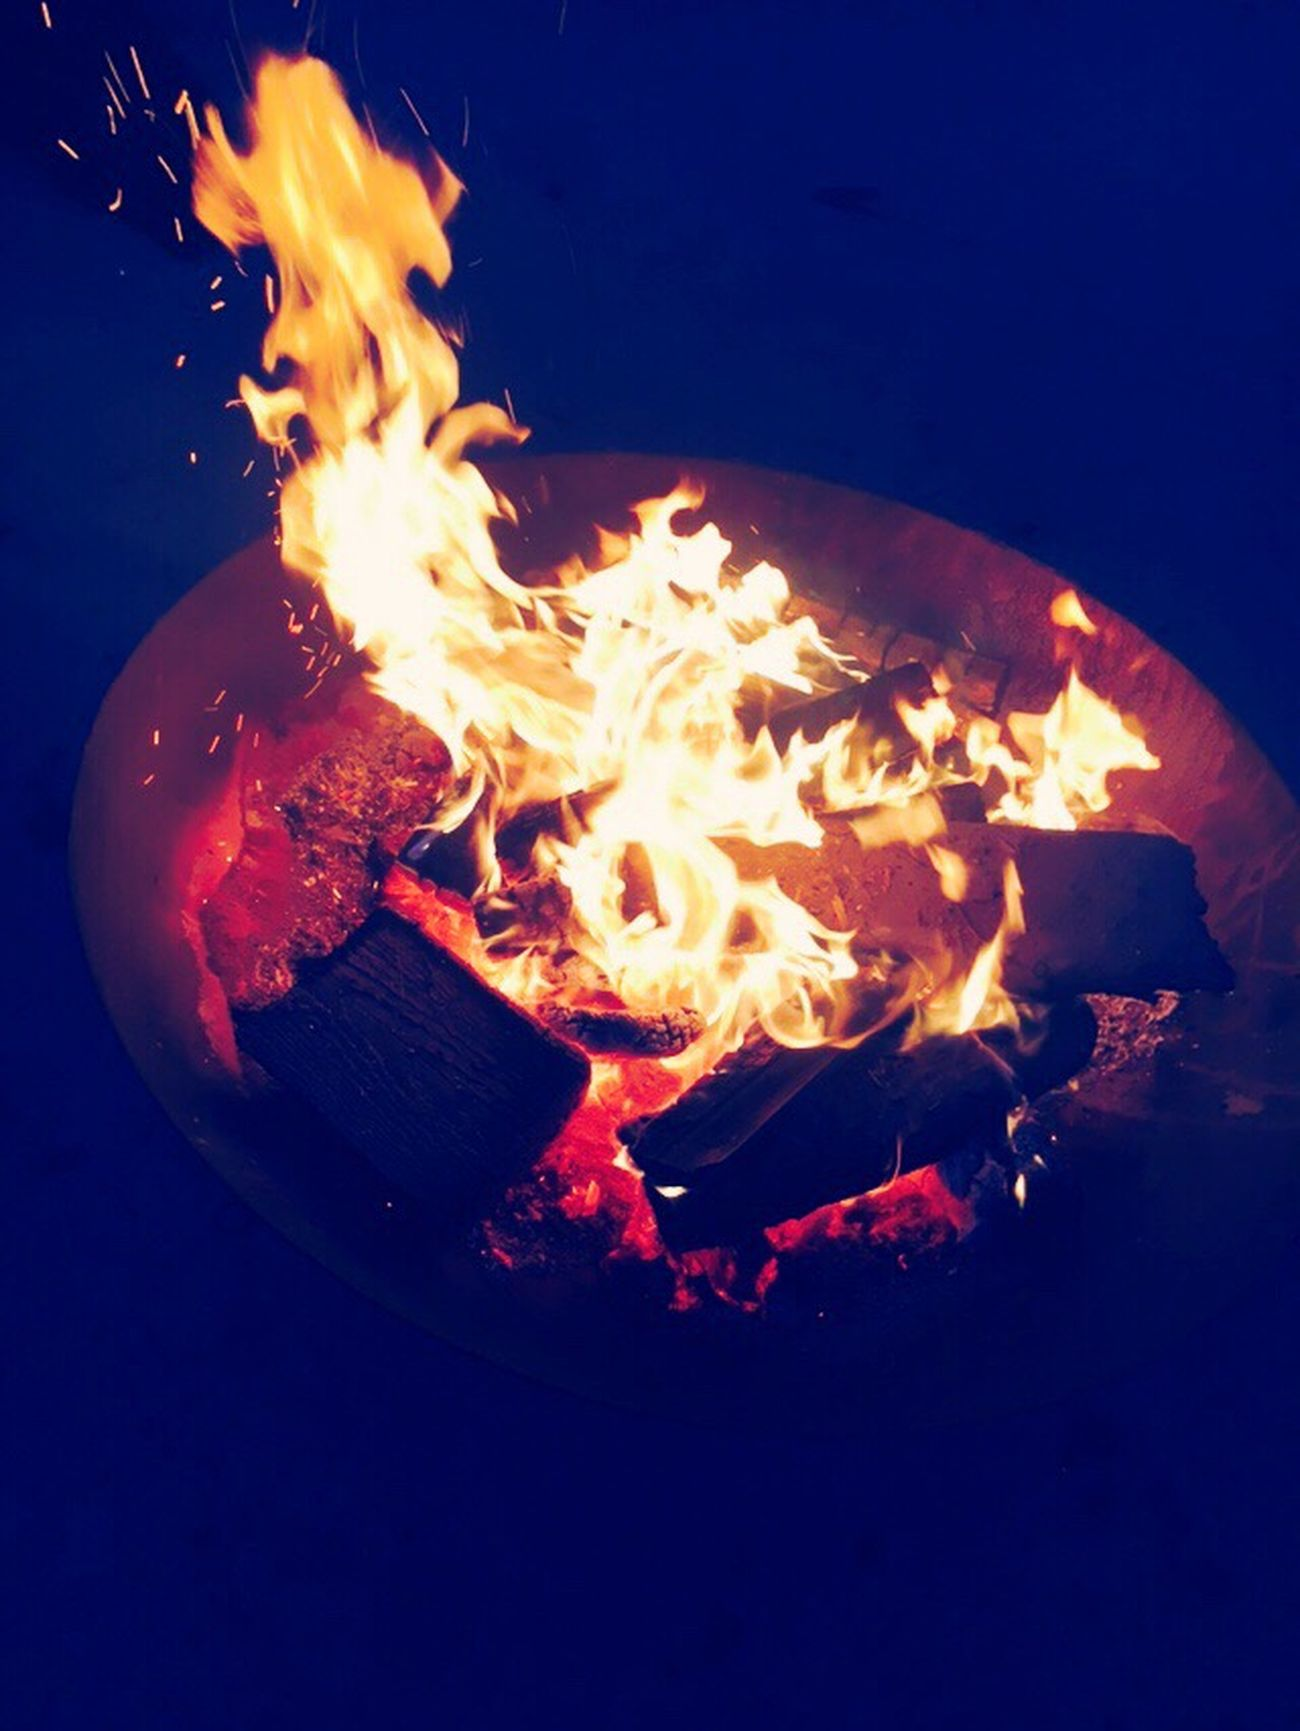 Flame Heat - Temperature Fire - Natural Phenomenon Burning Fire Pit Hot Night Outdoors